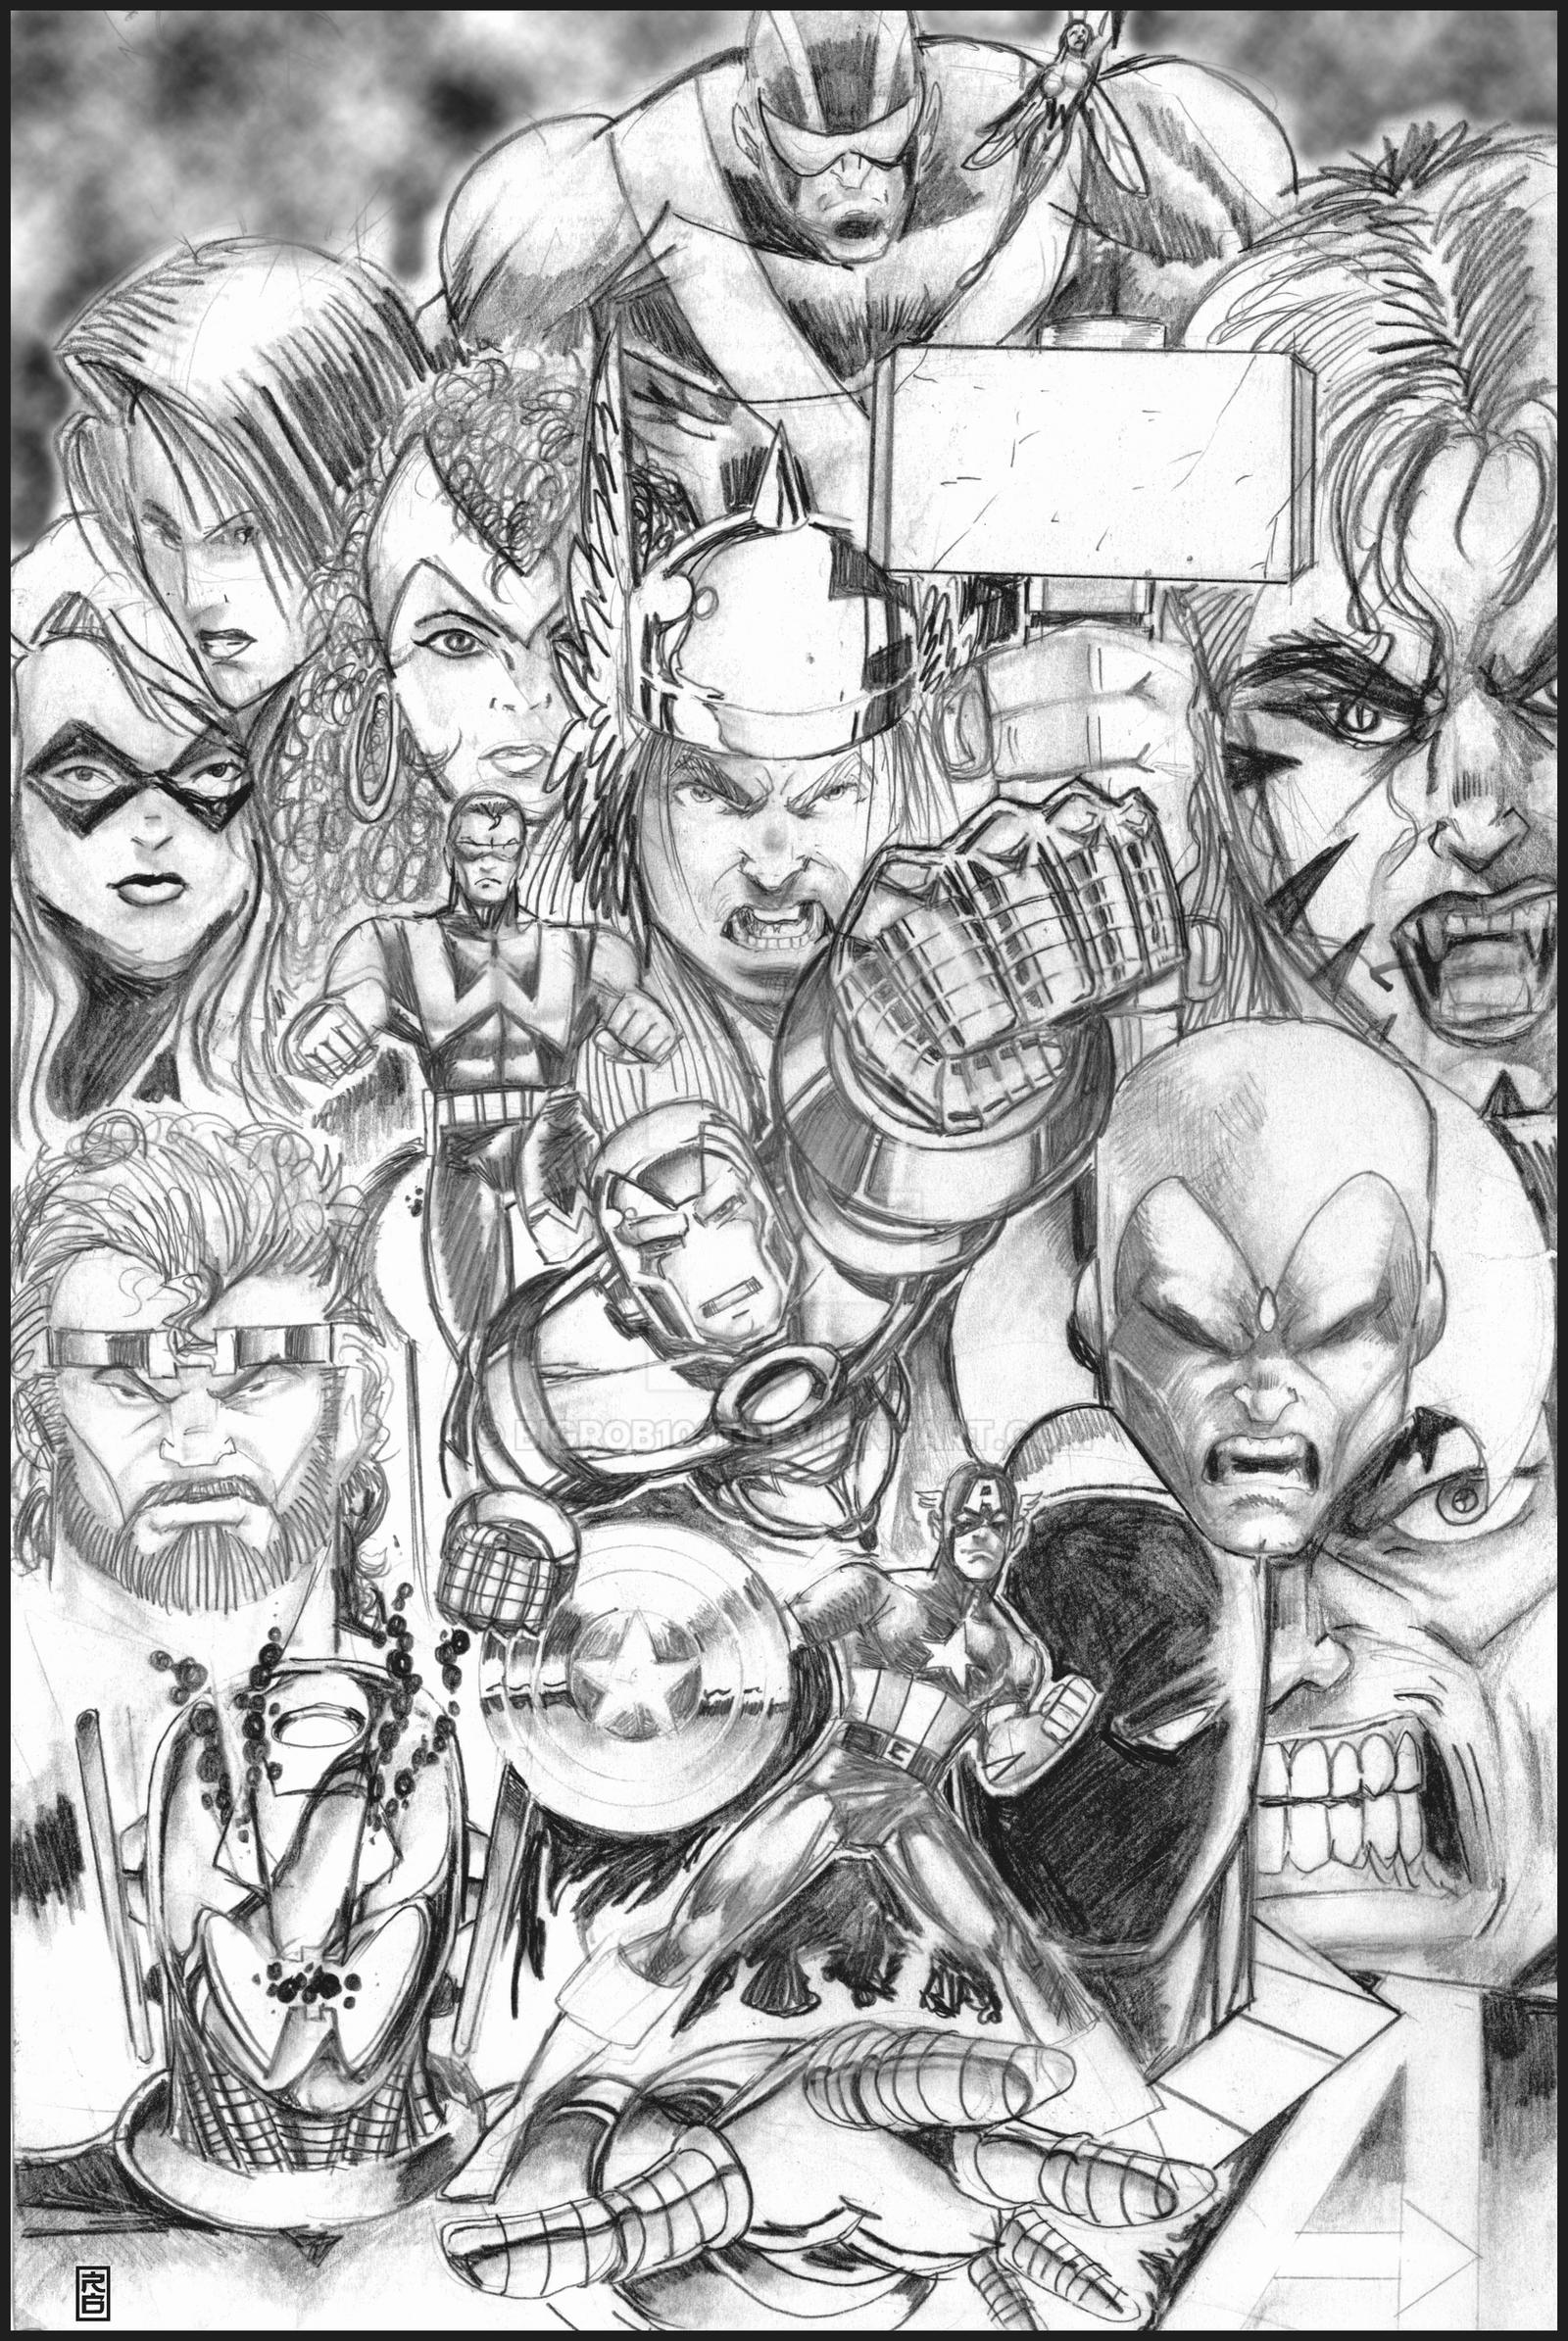 avengers drawing pictures the avengers in pencil by bigrob1031 on deviantart pictures avengers drawing